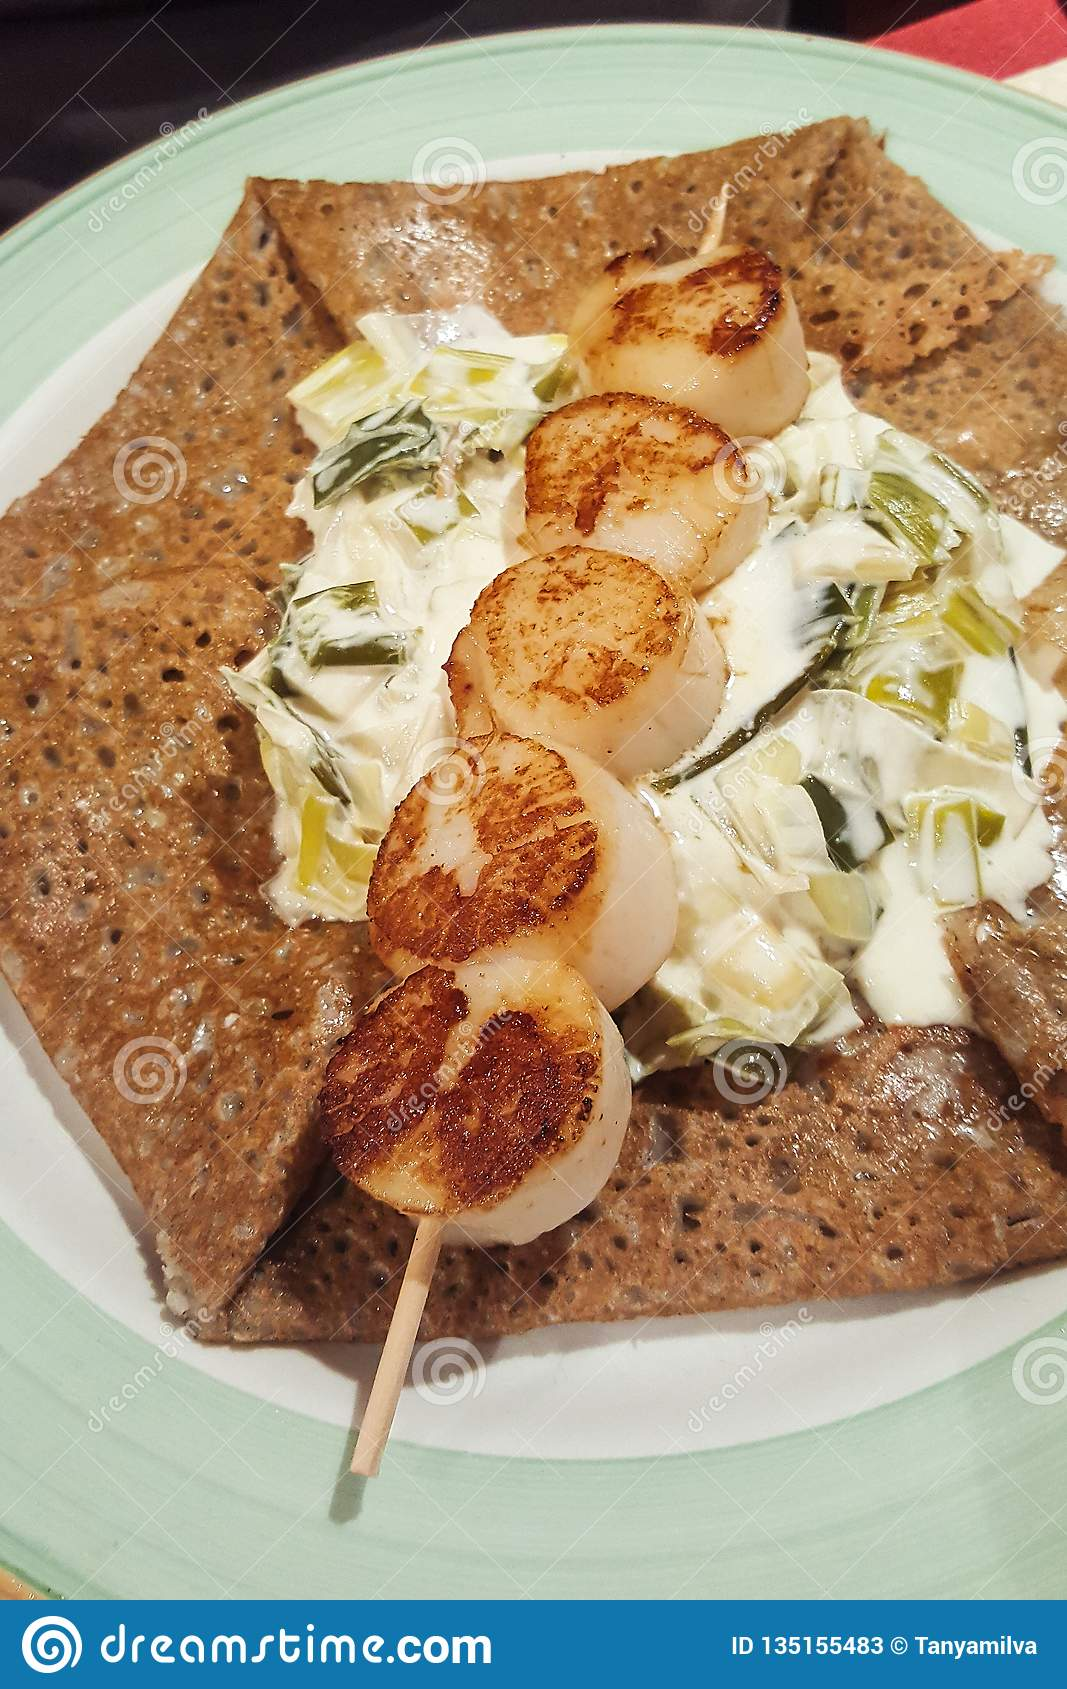 Scallop shellfish meat on skewer crepe with French pancake